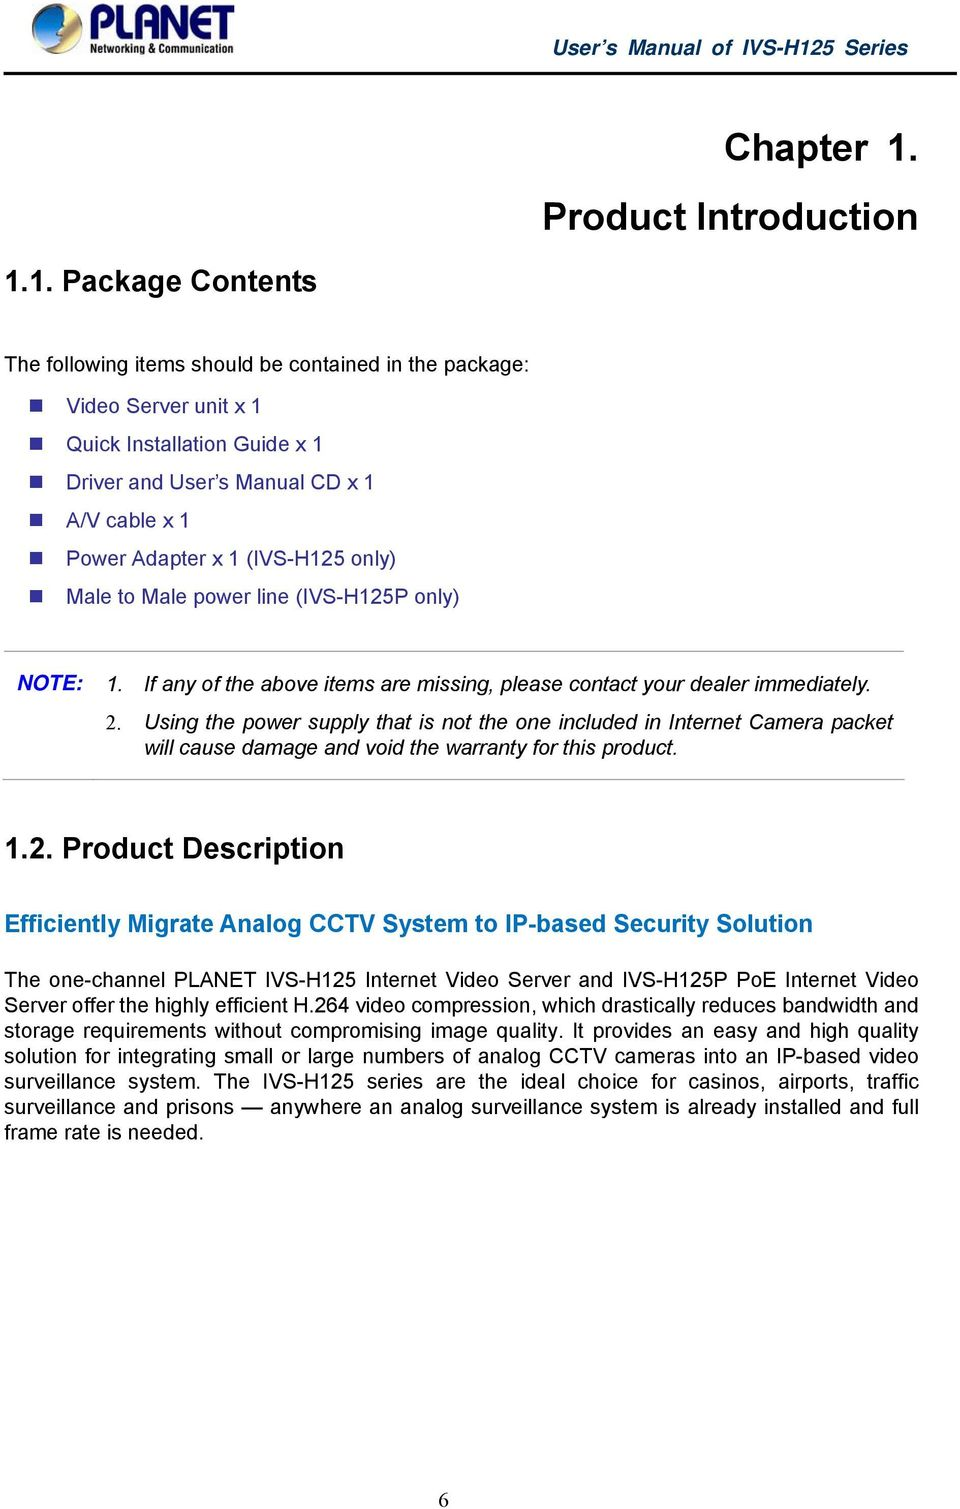 1. Package Contents The following items should be contained in the package: Video Server unit x 1 Quick Installation Guide x 1 Driver and User s Manual CD x 1 A/V cable x 1 Power Adapter x 1